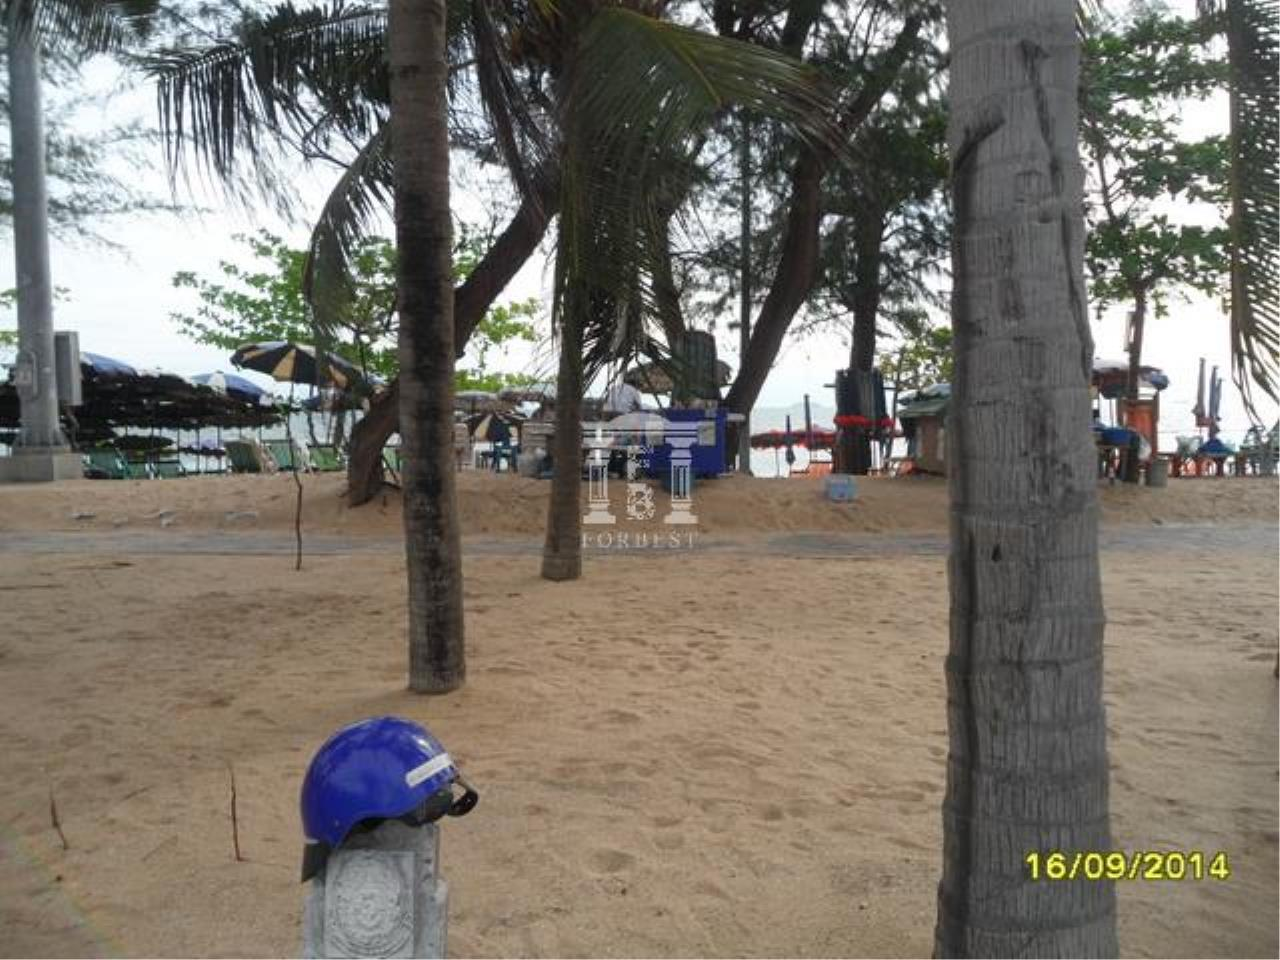 Forbest Properties Agency's 34914-Land for sale, in Banglamung district, Chonburi province, 32 rai 2